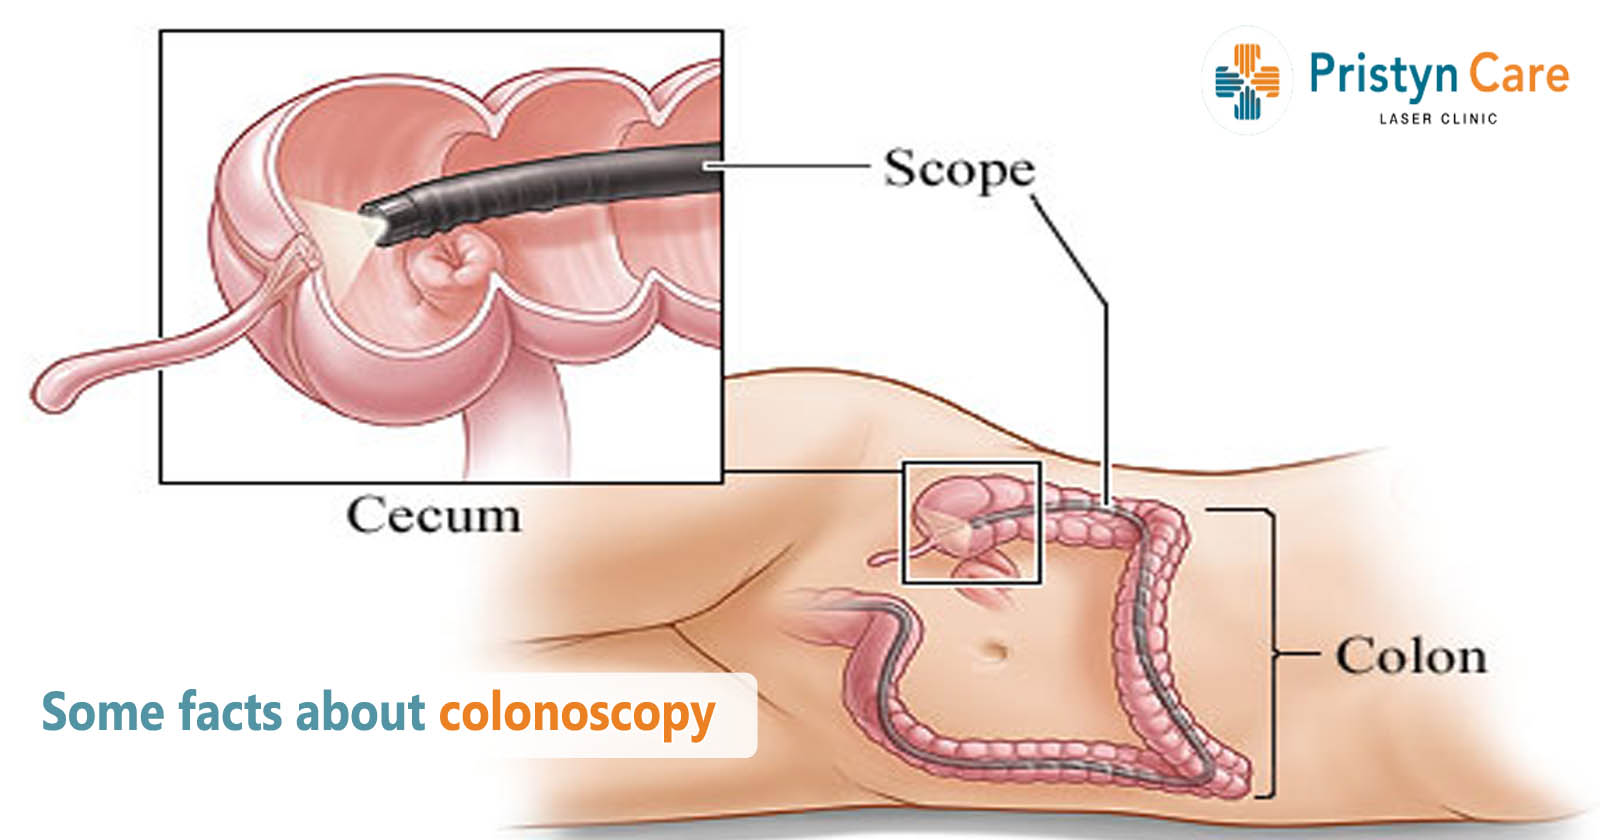 Some facts about colonoscopy